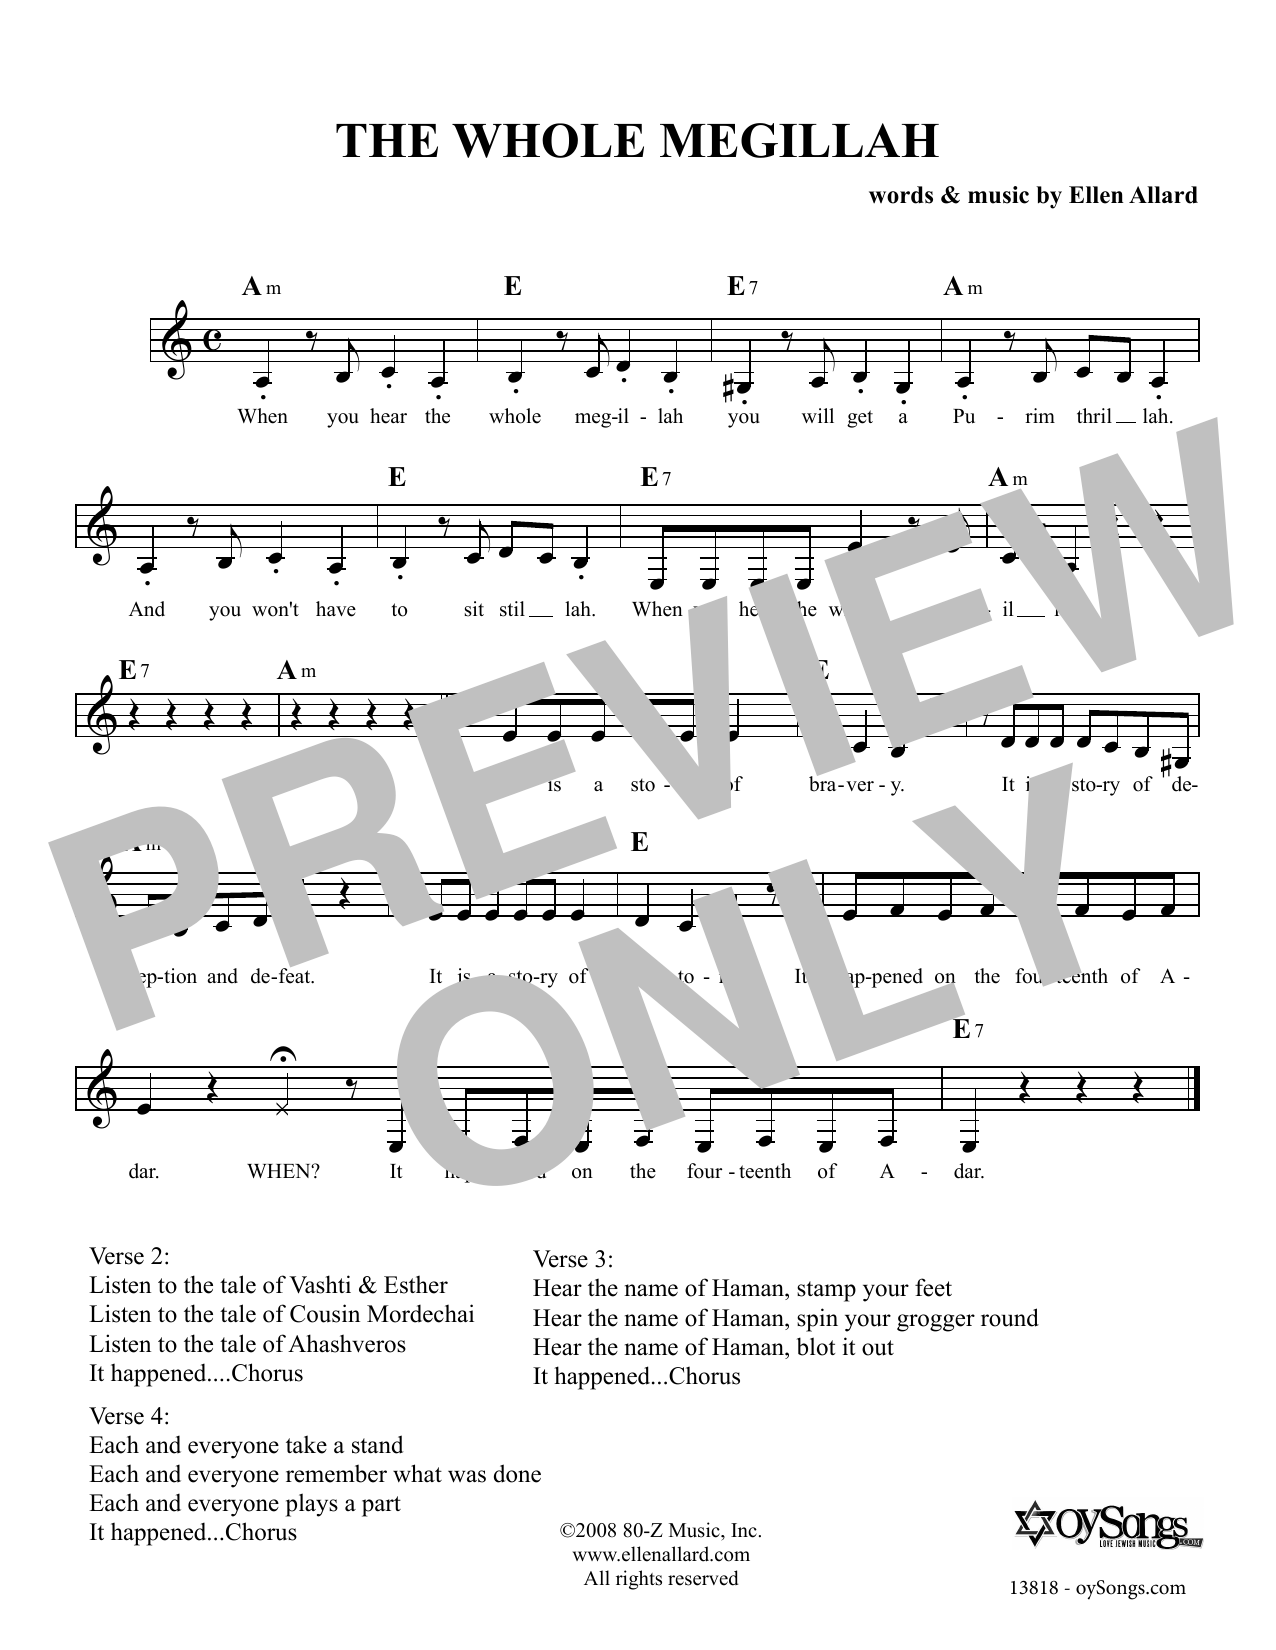 Ellen Allard The Whole Megillah sheet music notes and chords. Download Printable PDF.